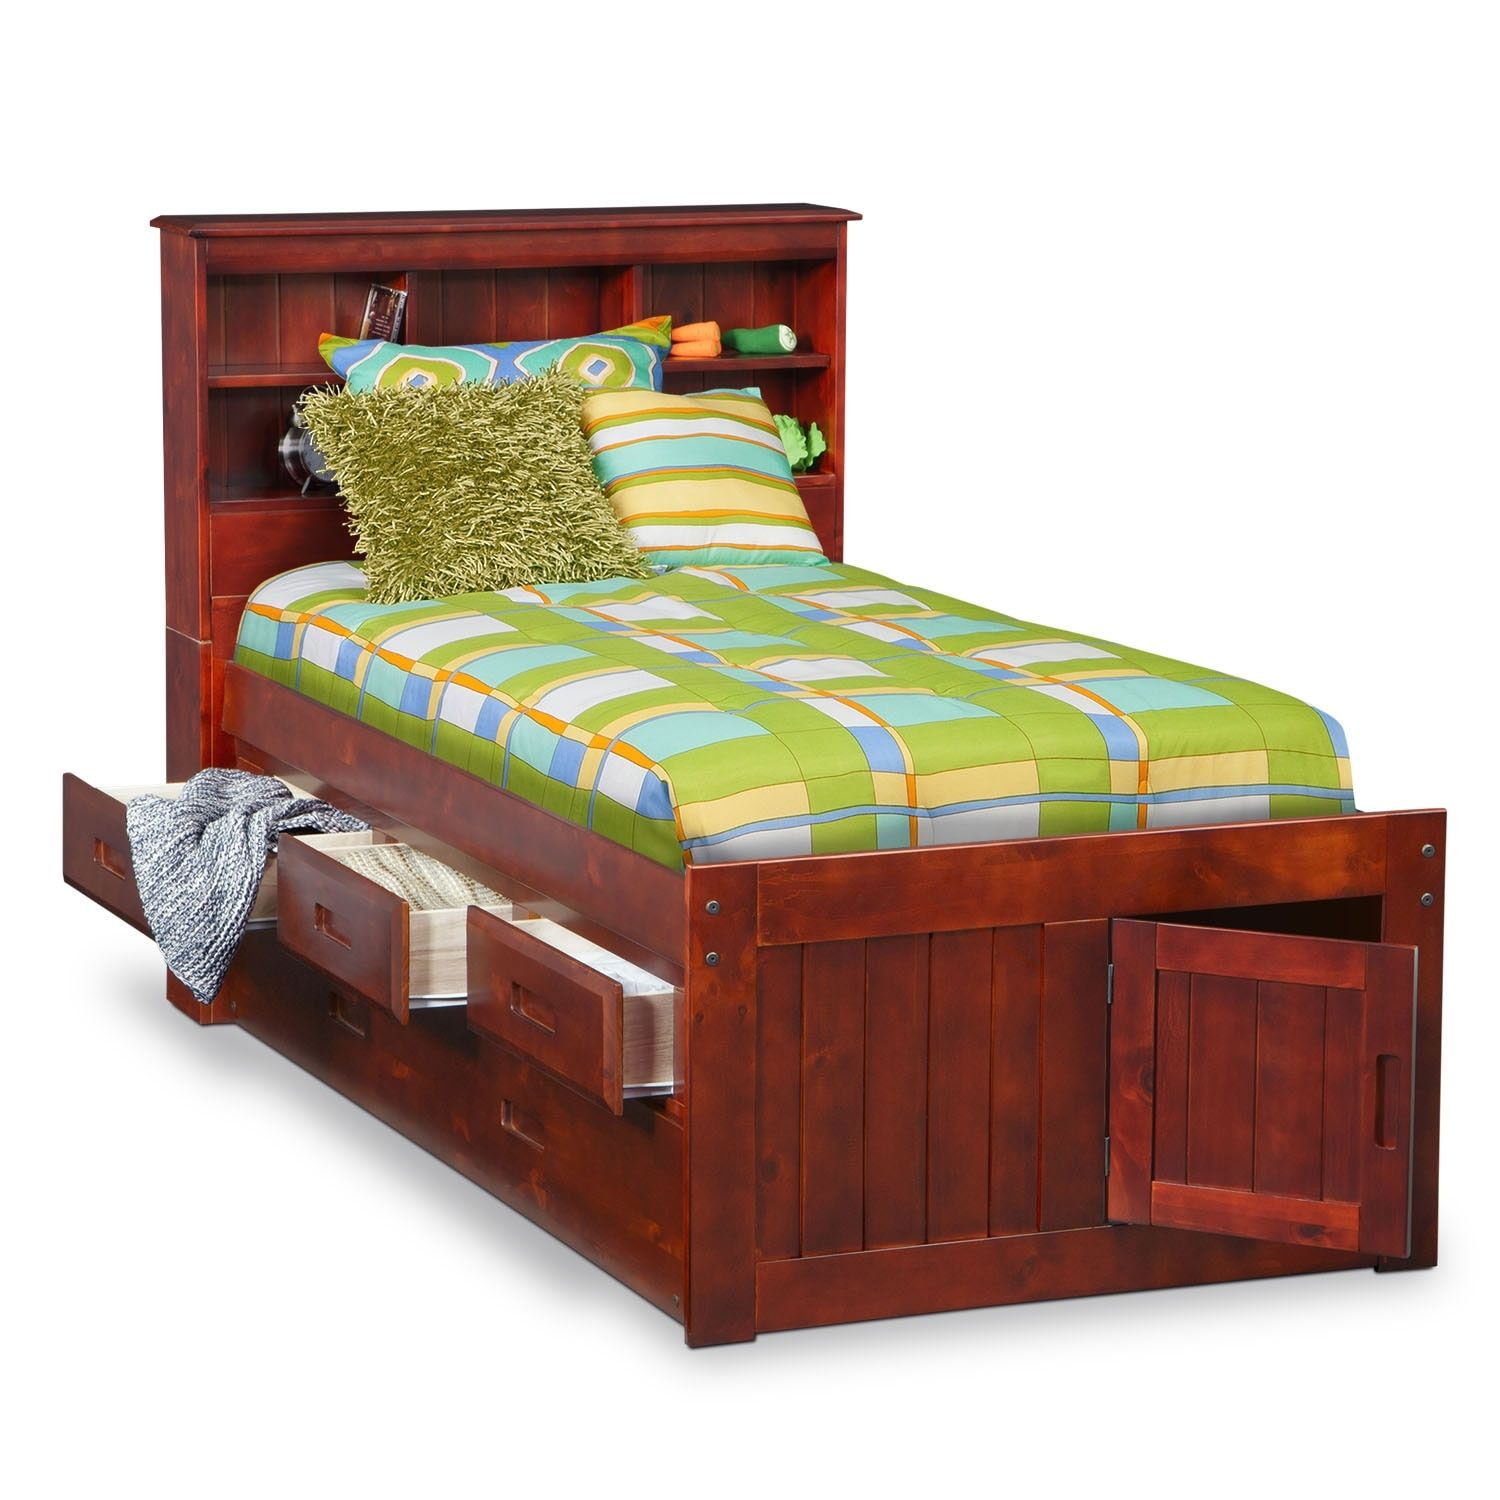 Boat Bed With Trundle And Toy Box Storage: Ranger Bookcase Bed With 3 Underbed Drawers And Twin